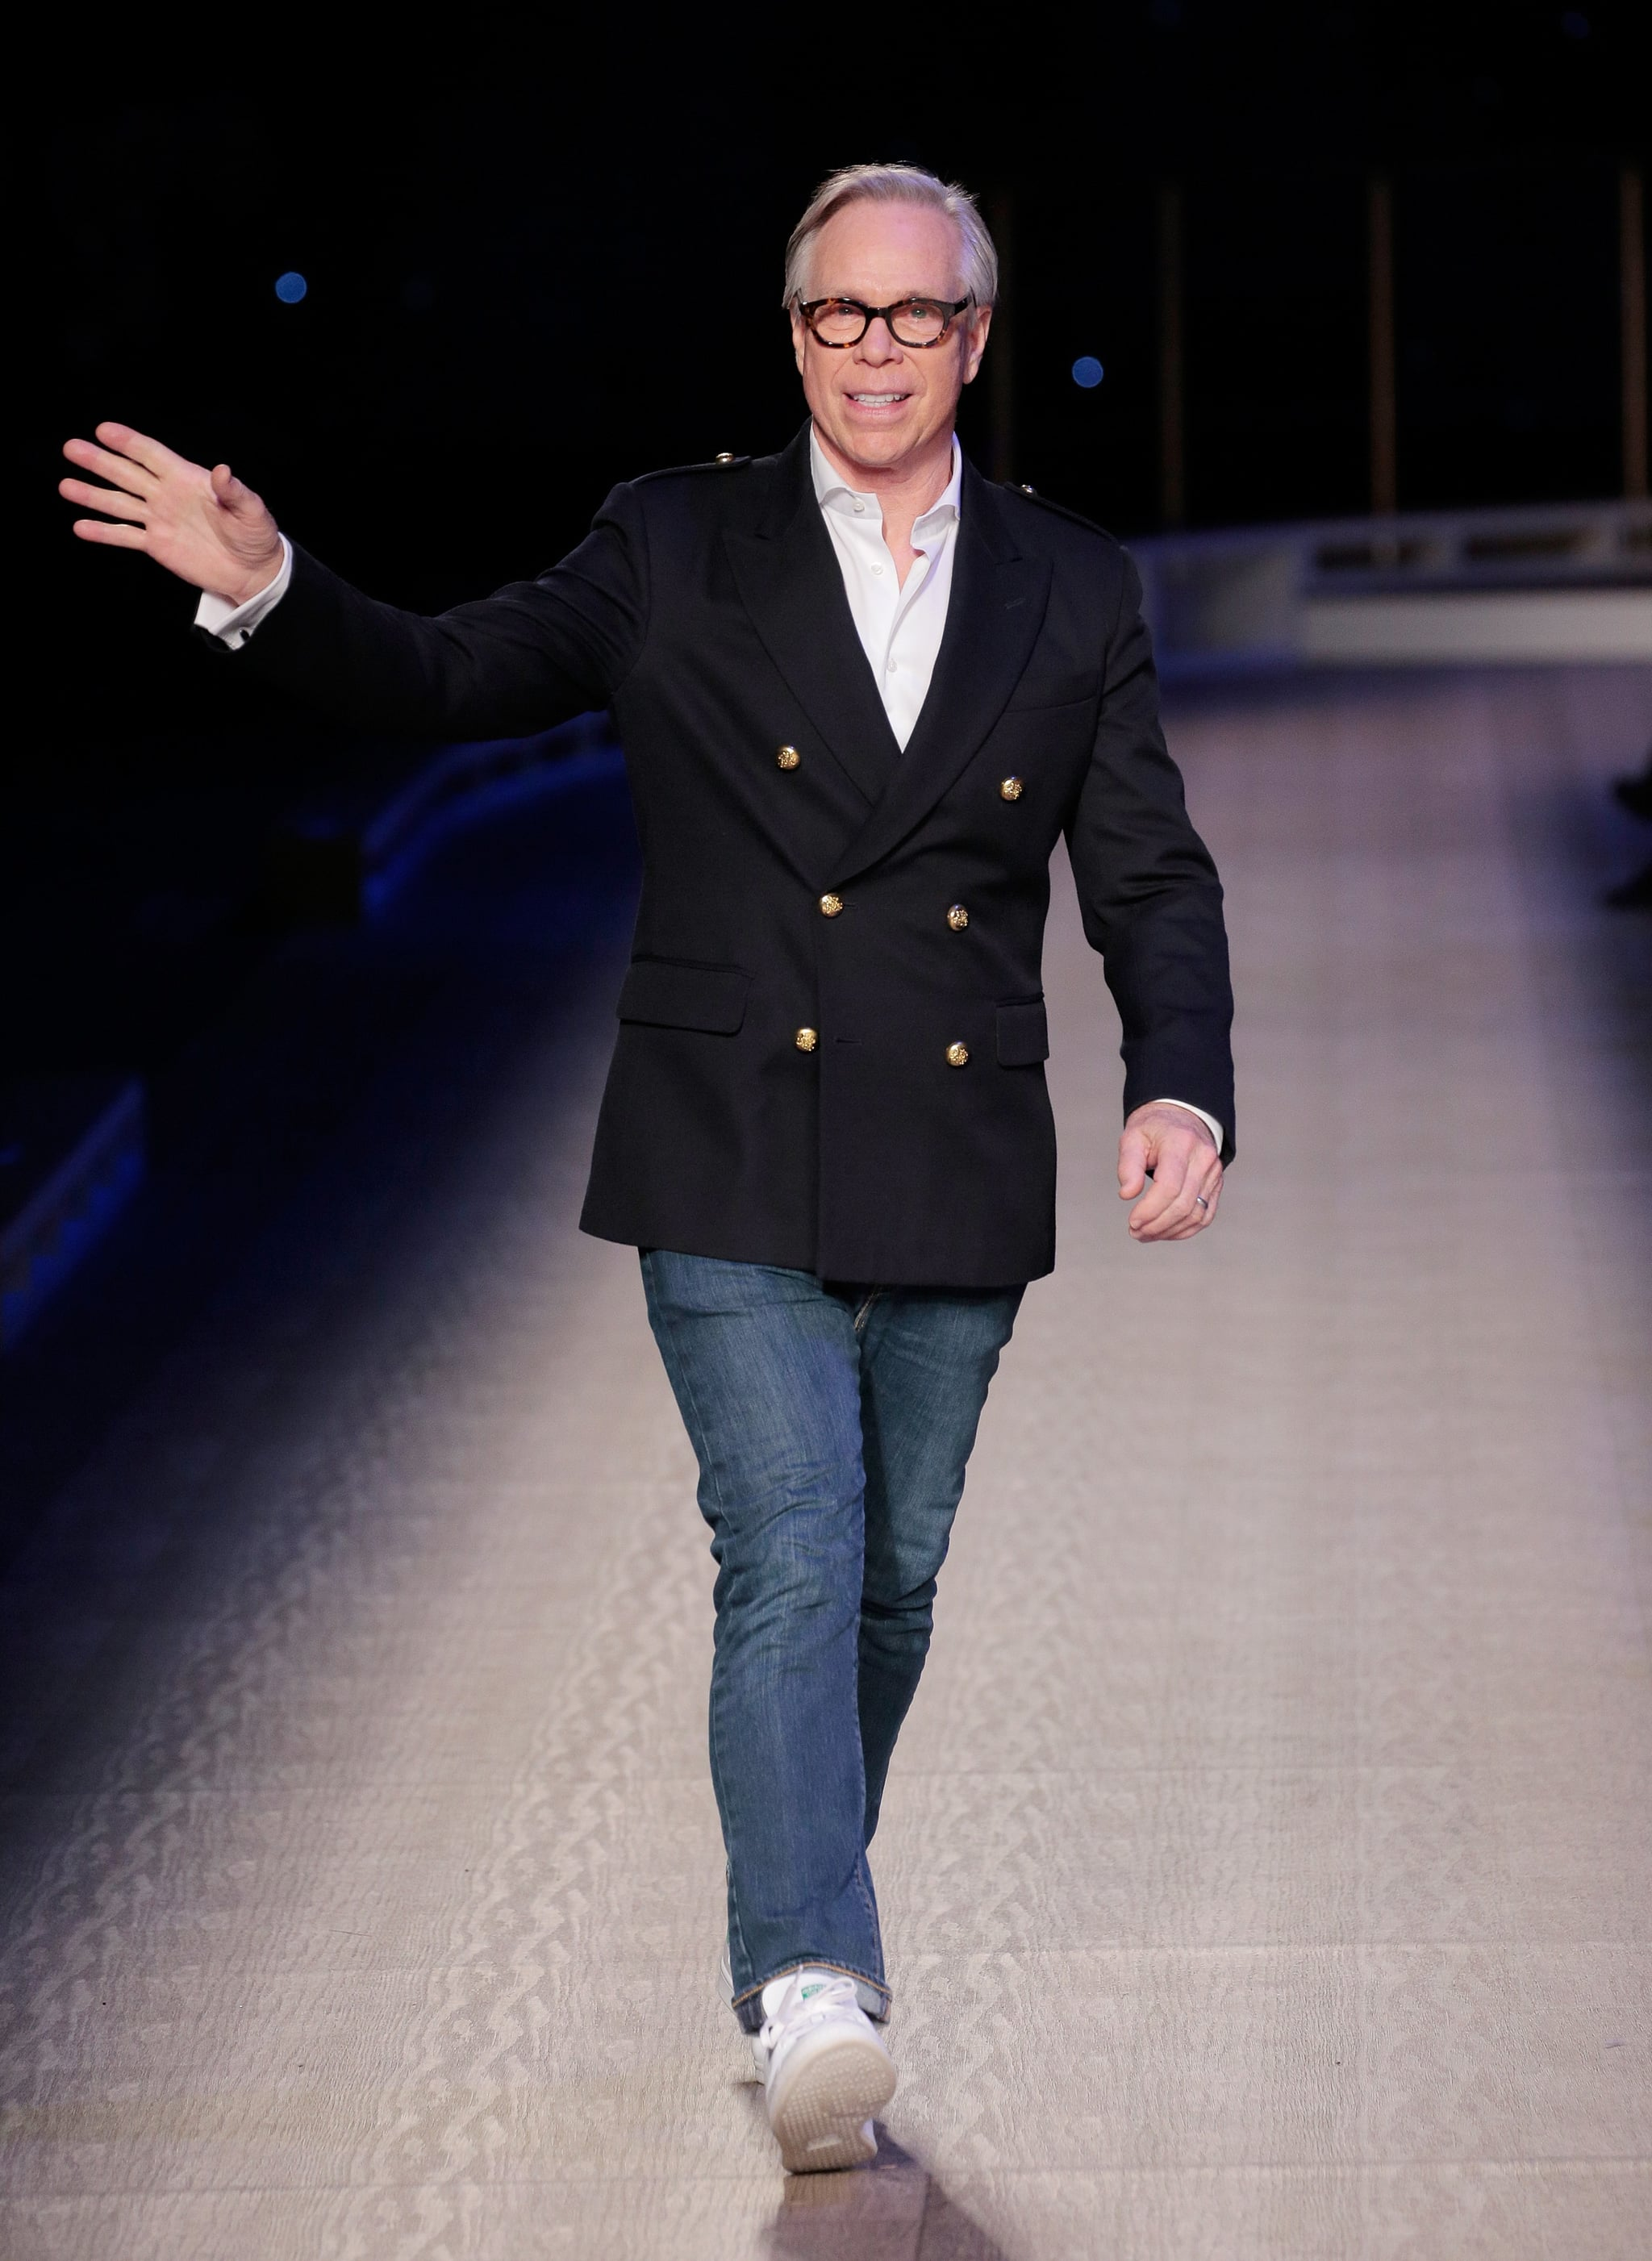 NEW YORK, NY - FEBRUARY 15:  Designer Tommy Hilfiger walks the runway during the Tommy Hilfiger Women's runway show during Fall 2016 New York Fashion Week at Park Avenue Armory on February 15, 2016 in New York City.  (Photo by Randy Brooke/Getty Images for Tommy Hilfiger)